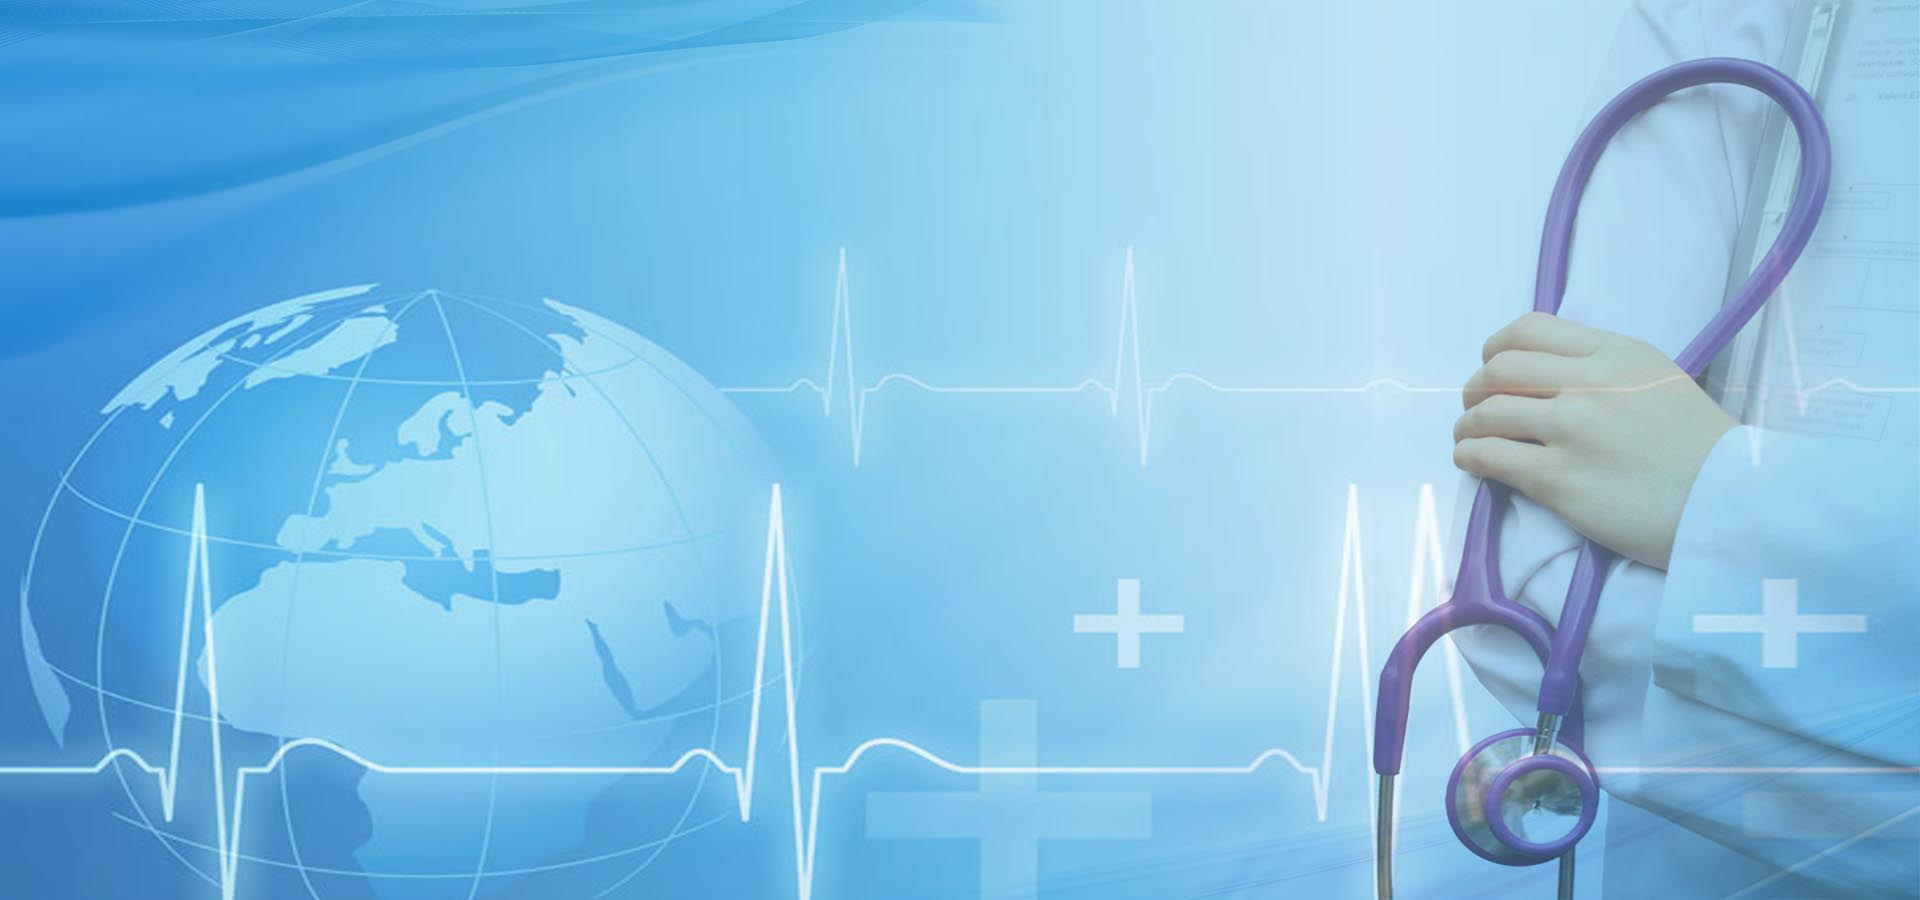 health background  poster  banner  science background